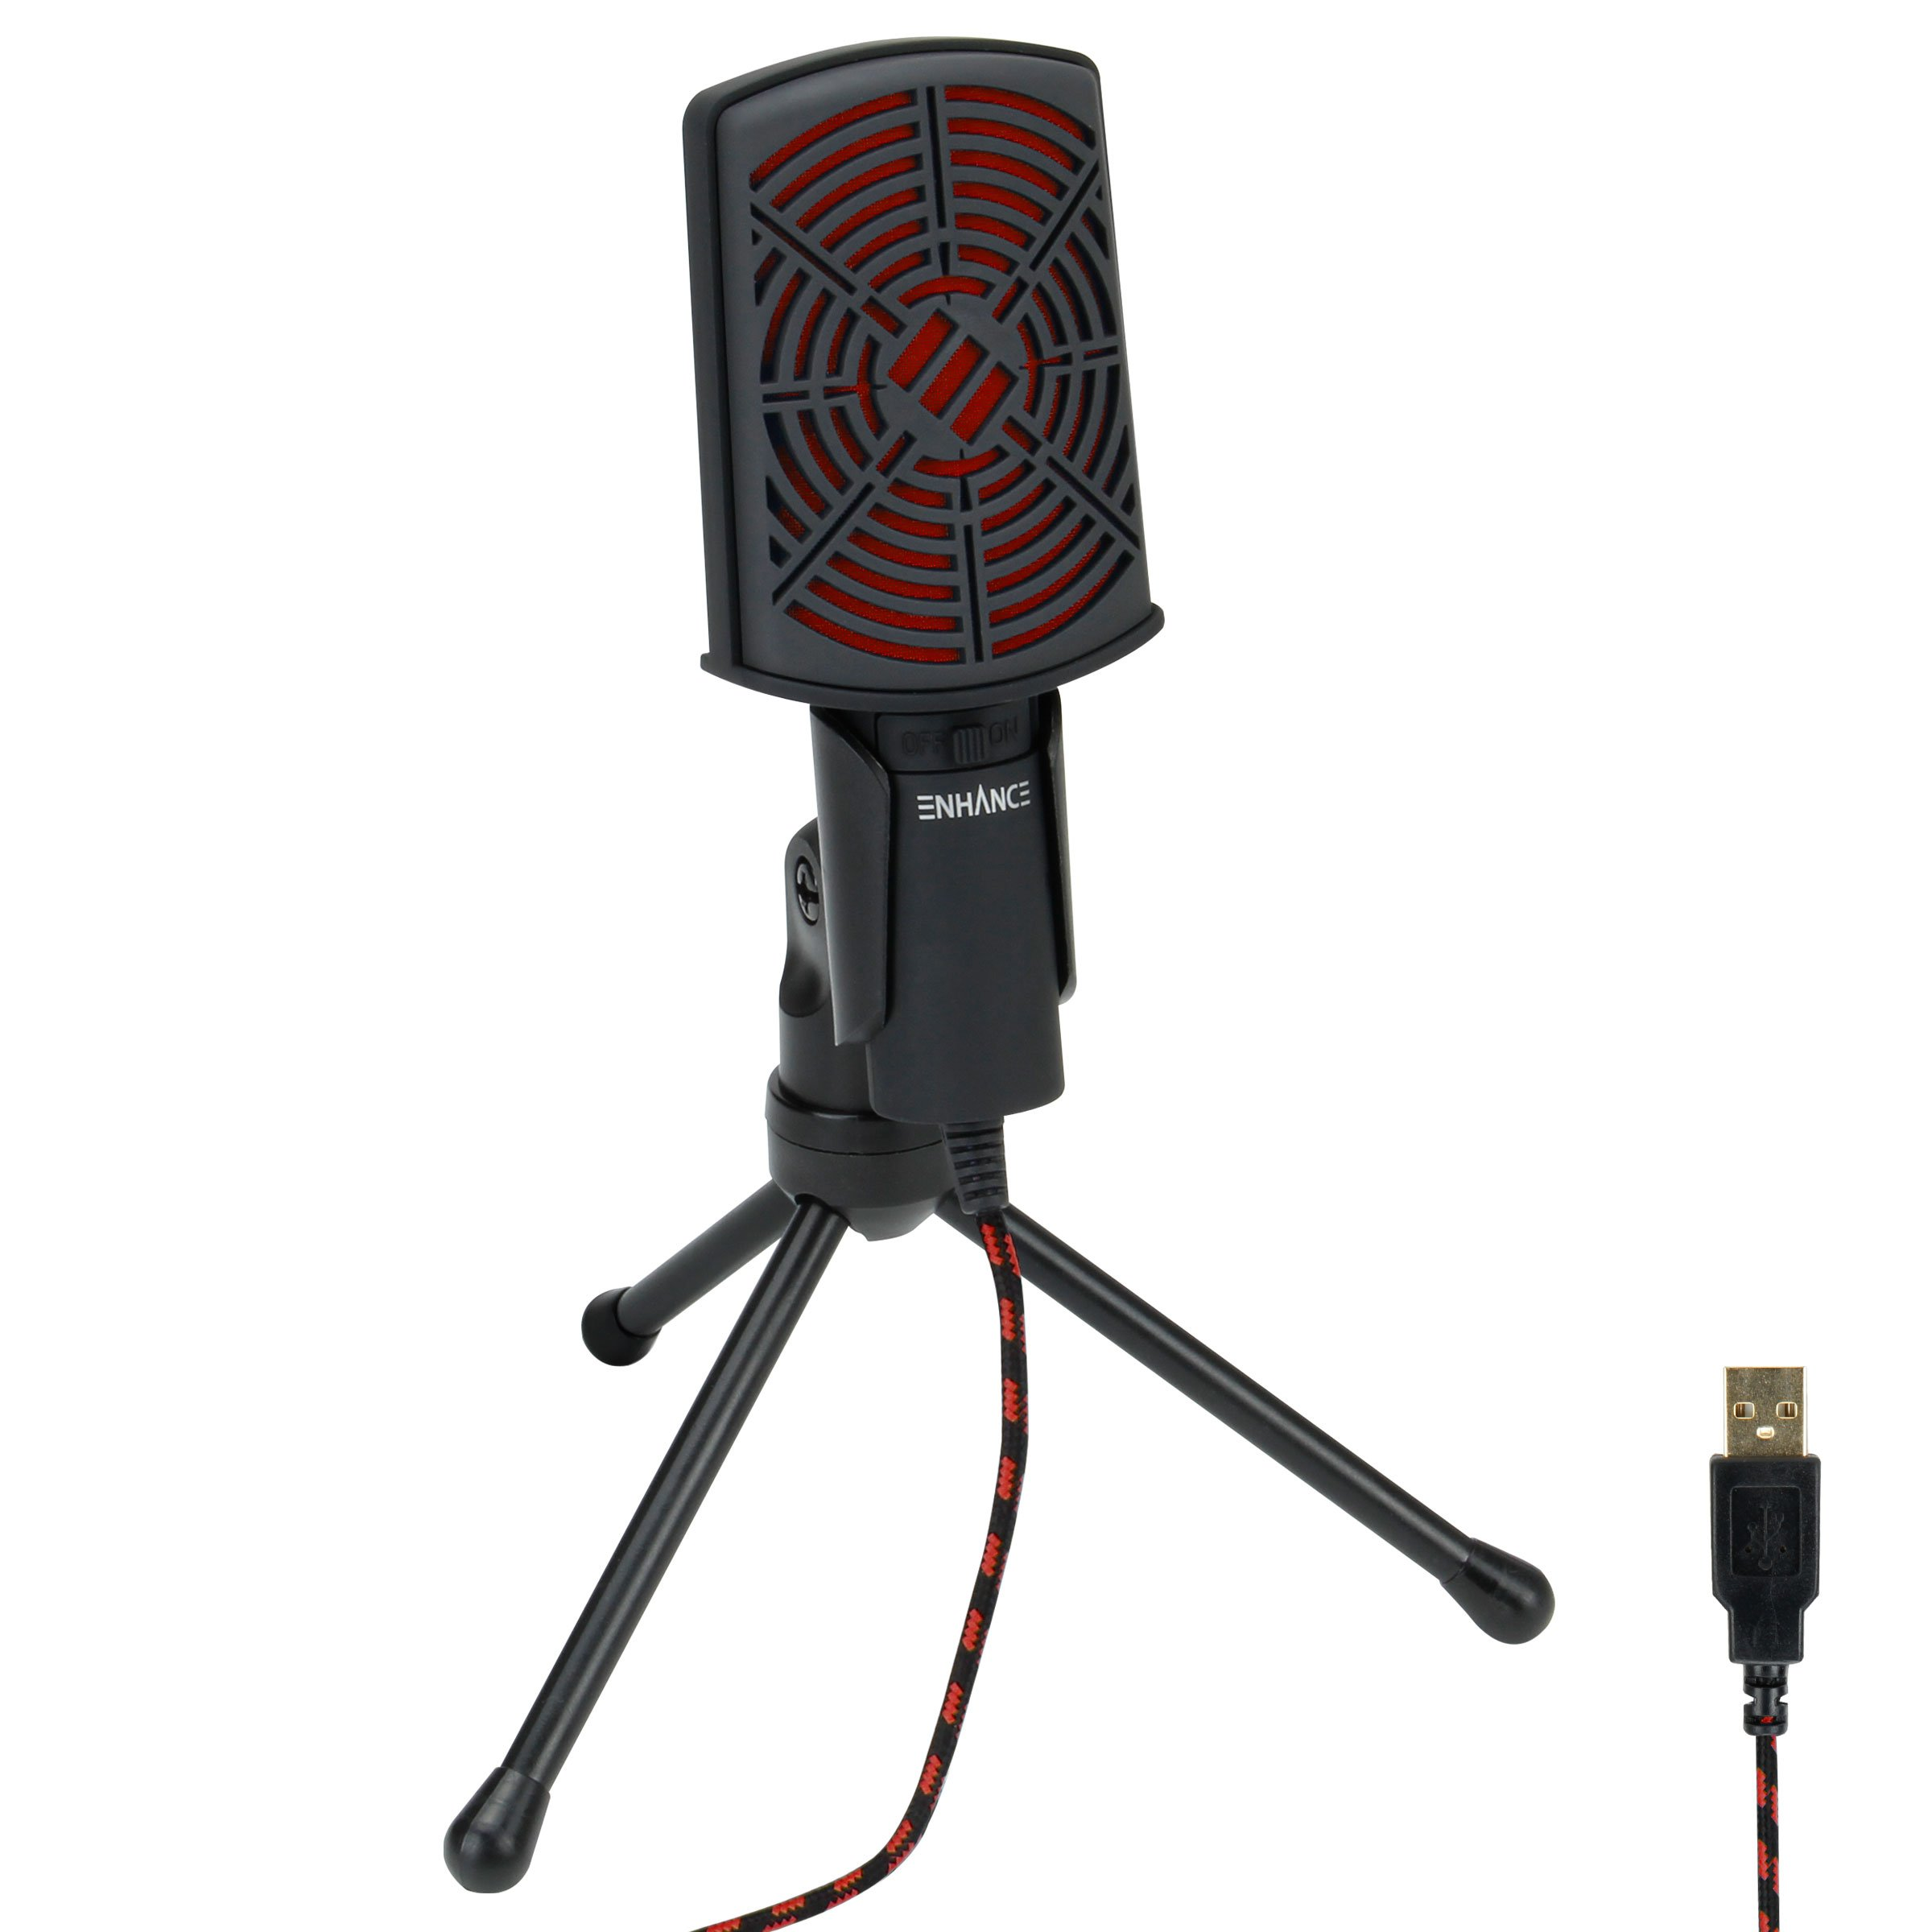 ENHANCE USB Condenser Gaming Microphone - Computer Desktop Mic for Streaming & Recording with Adjustable Stand Design and Mute Switch - for Skype, Conference Calls, Twitch, YouTube, and Discord - Red